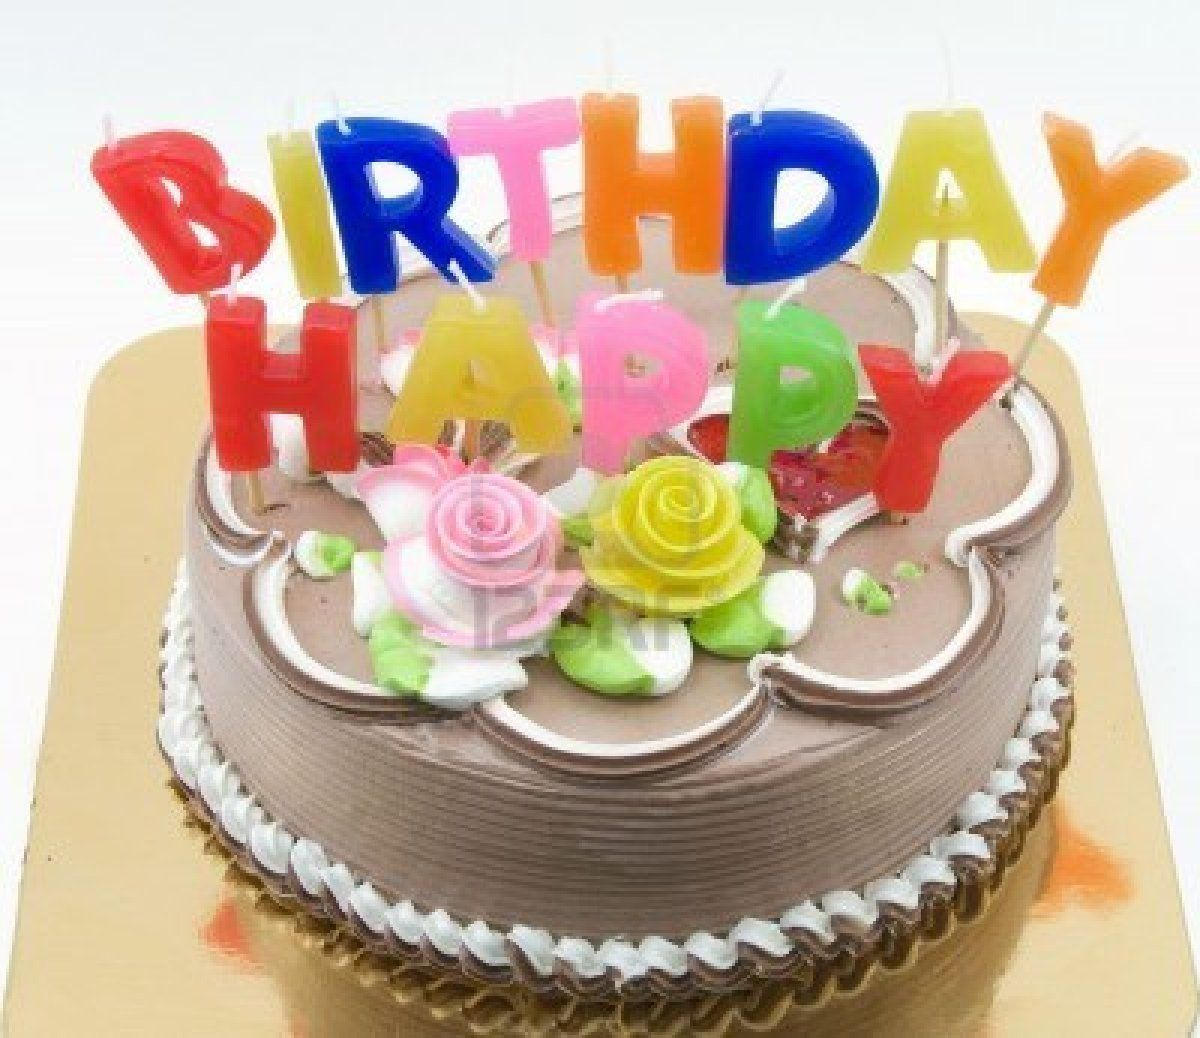 More Images For Cake : birthday cake pictures Birthday cake image, image of ...